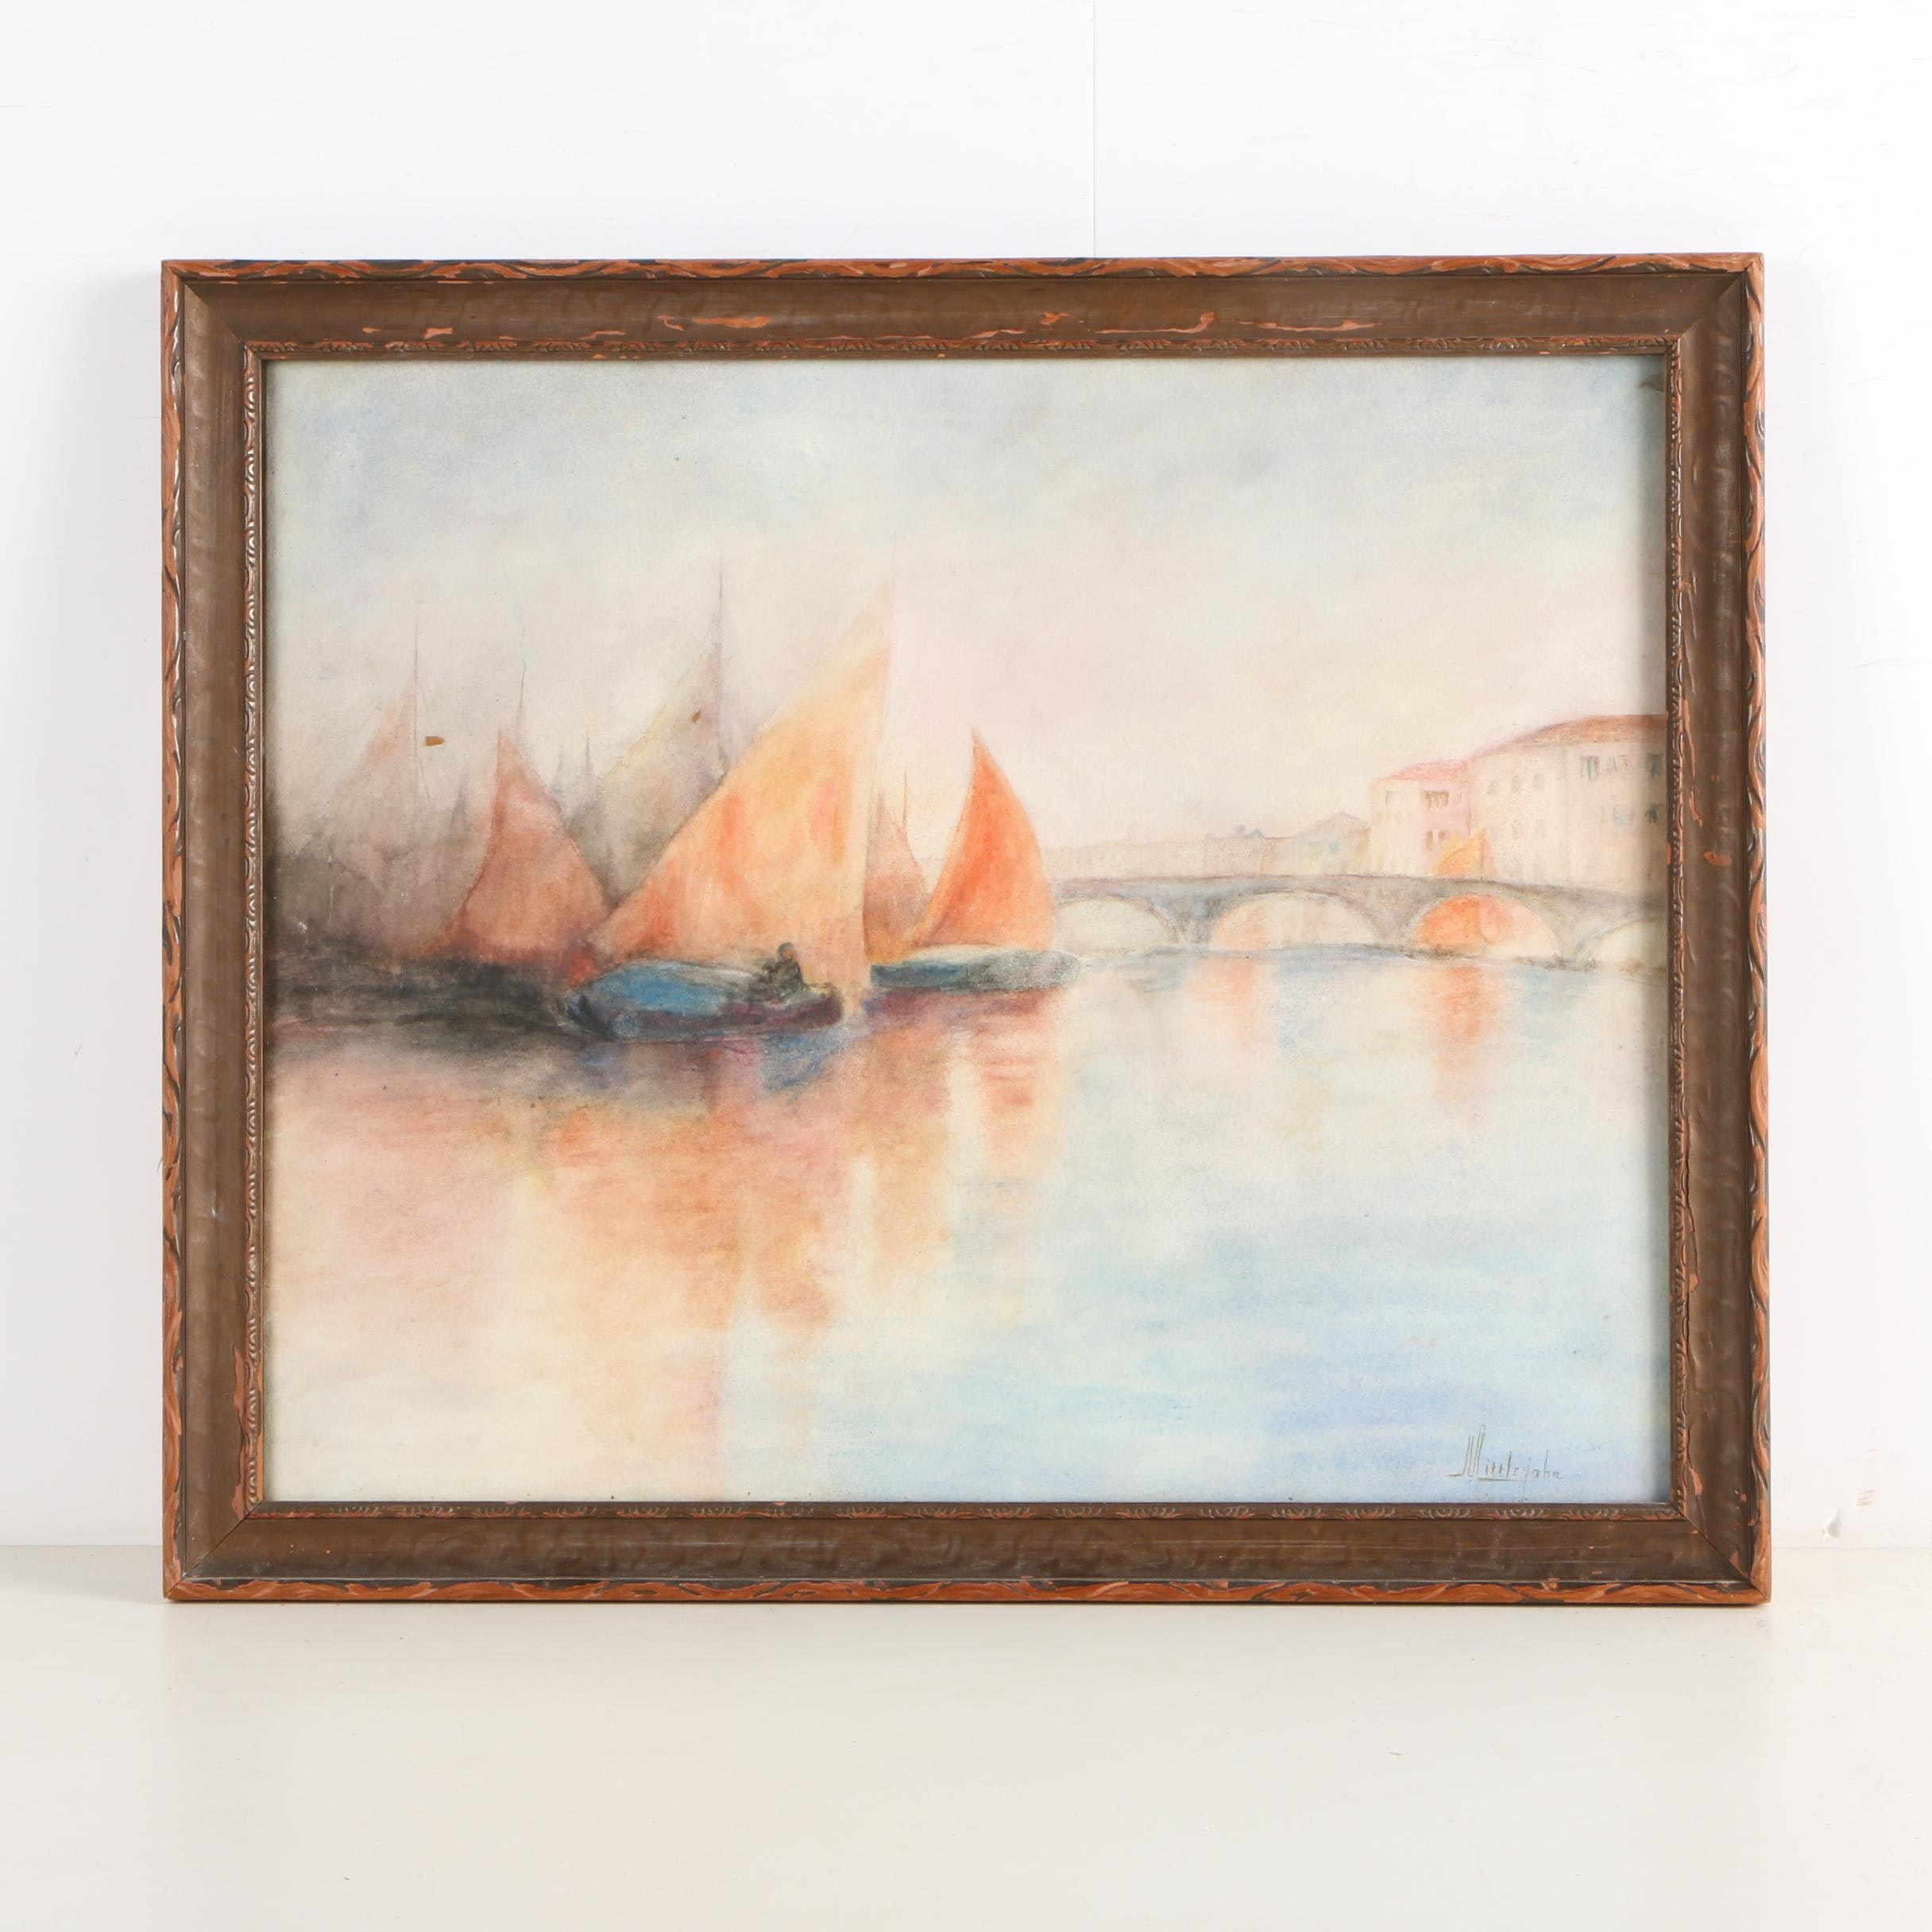 Littlejohn Watercolor Painting of Boats